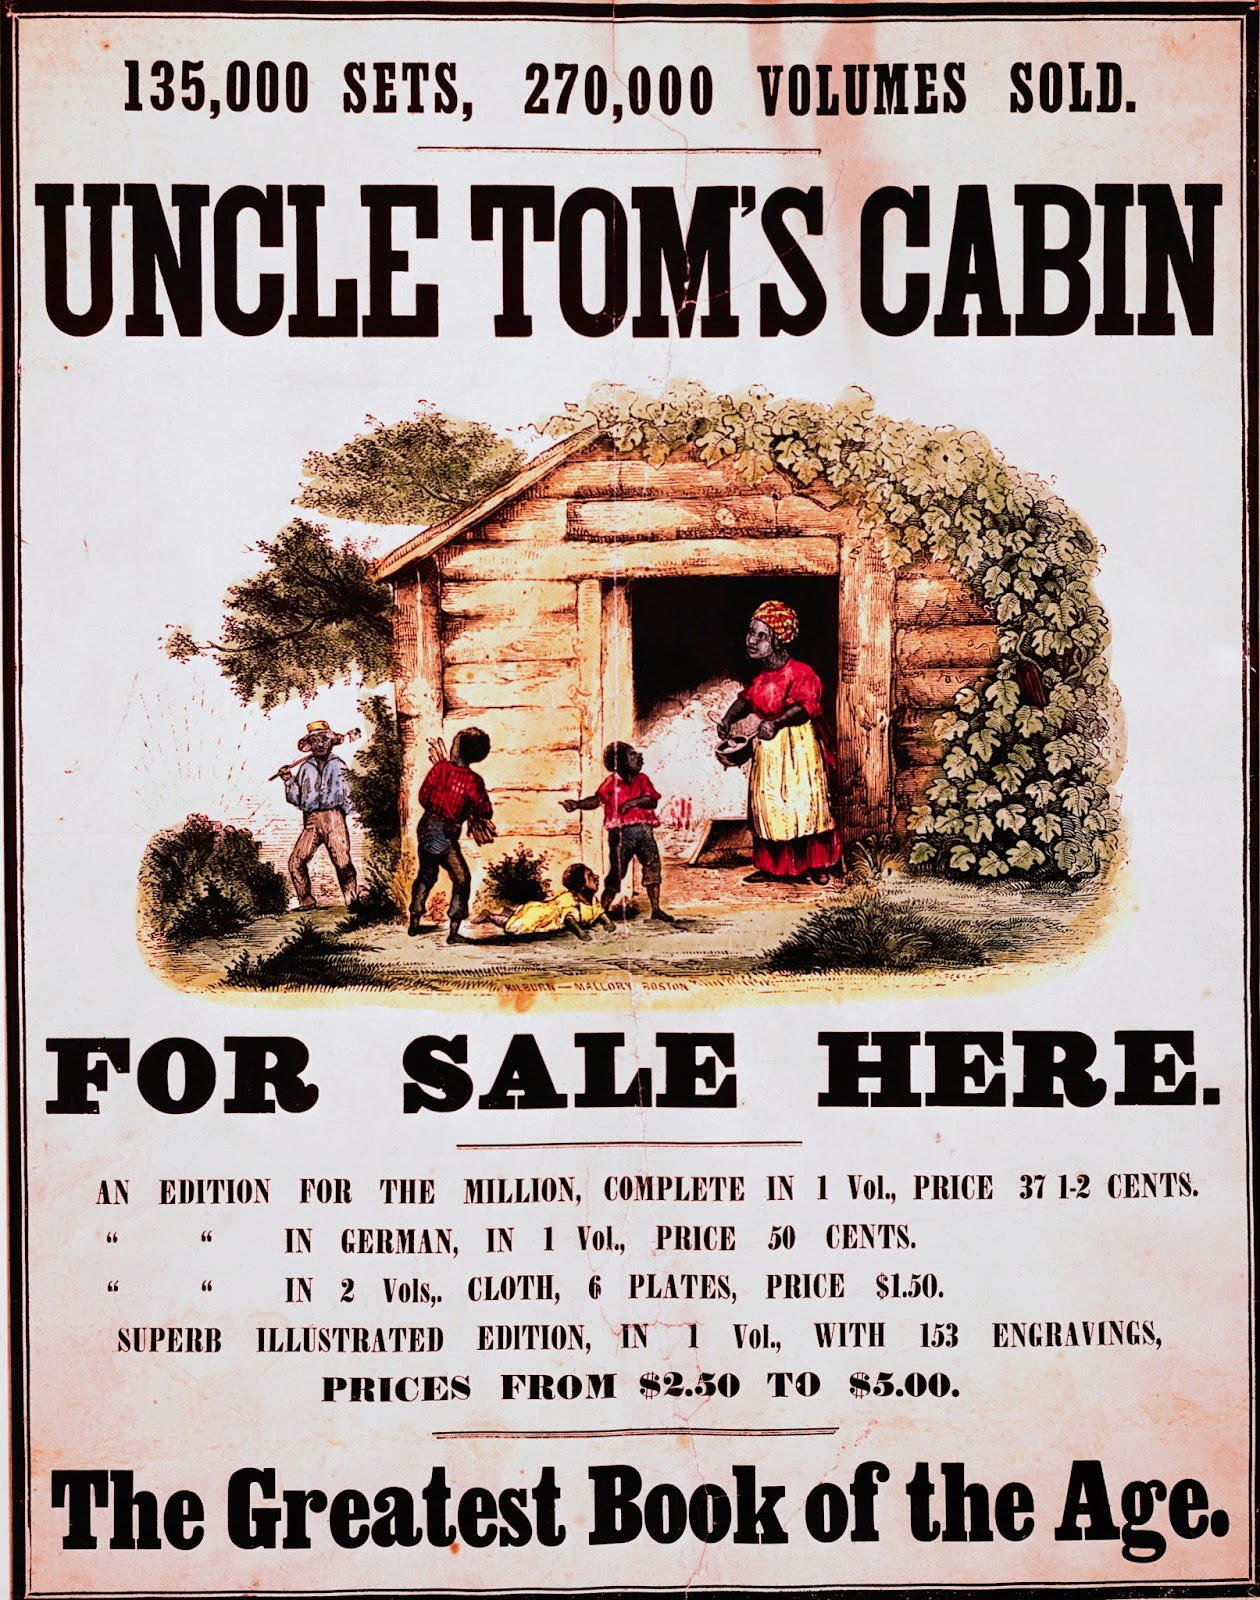 Tom as a Moral Miracle in Uncle Tom's Cabin